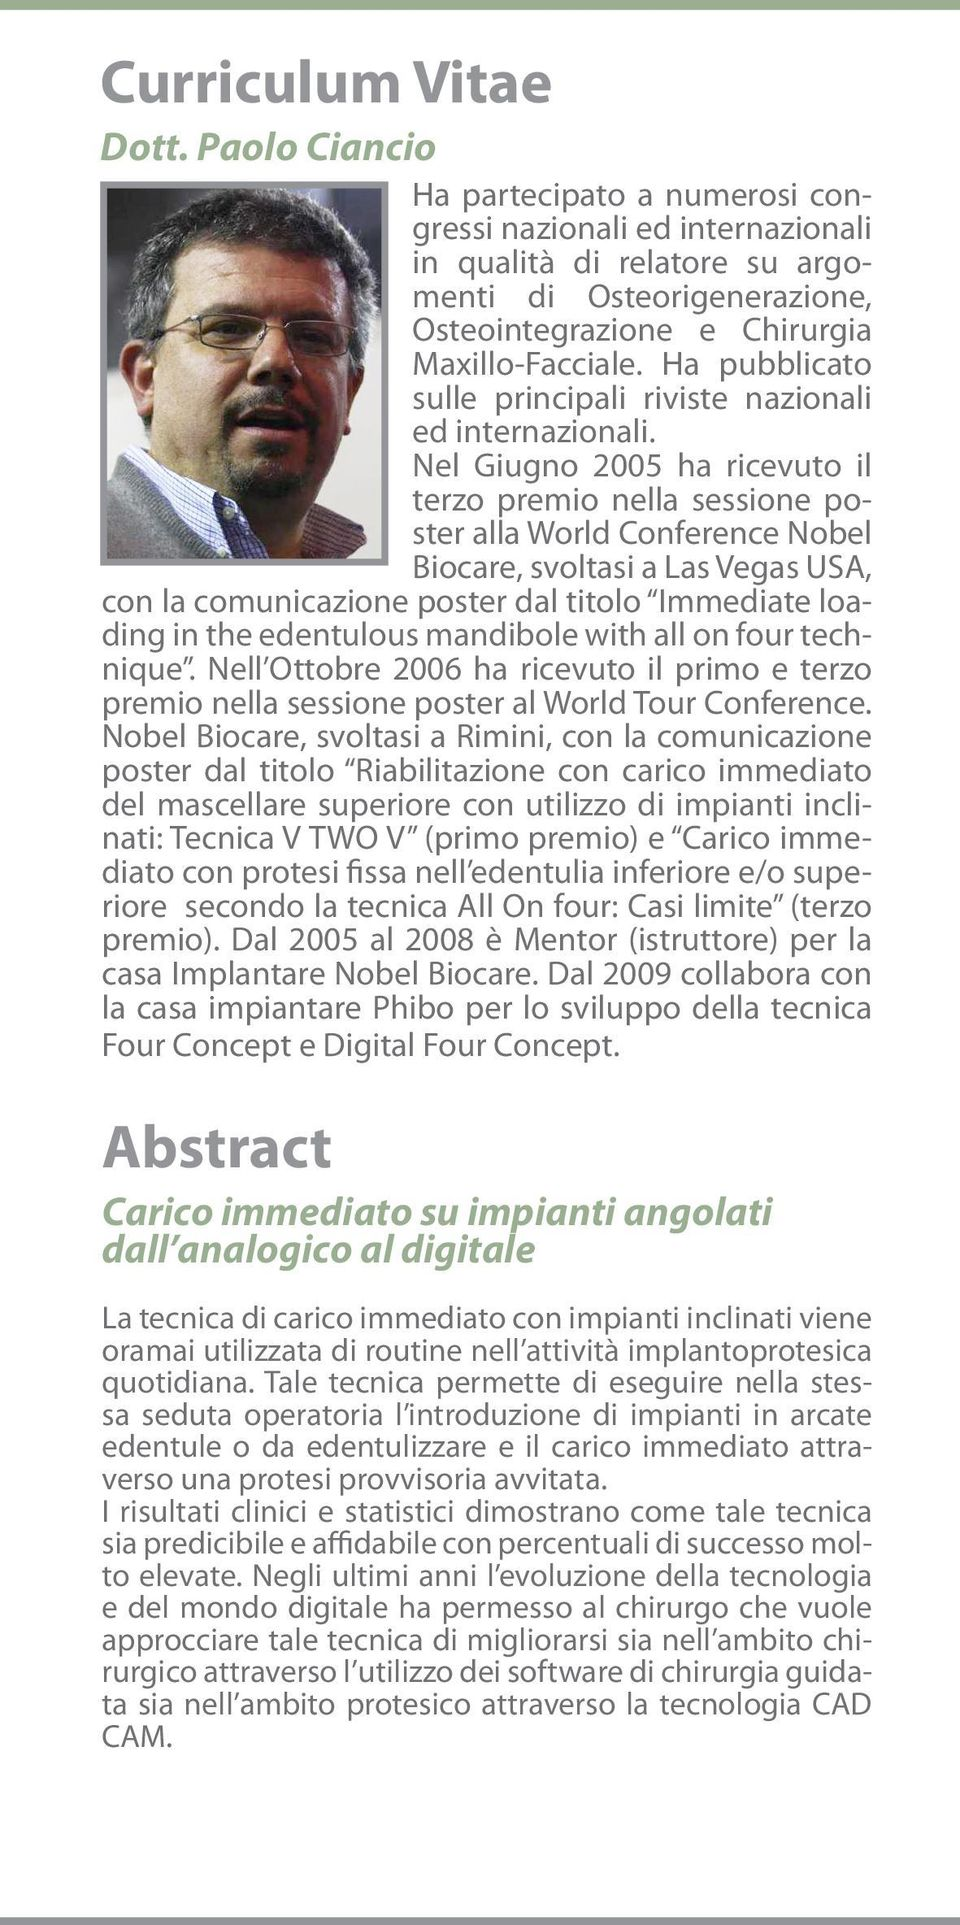 Nel Giugno 2005 ha ricevuto il terzo premio nella sessione poster alla World Conference Nobel Biocare, svoltasi a Las Vegas USA, con la comunicazione poster dal titolo Immediate loading in the